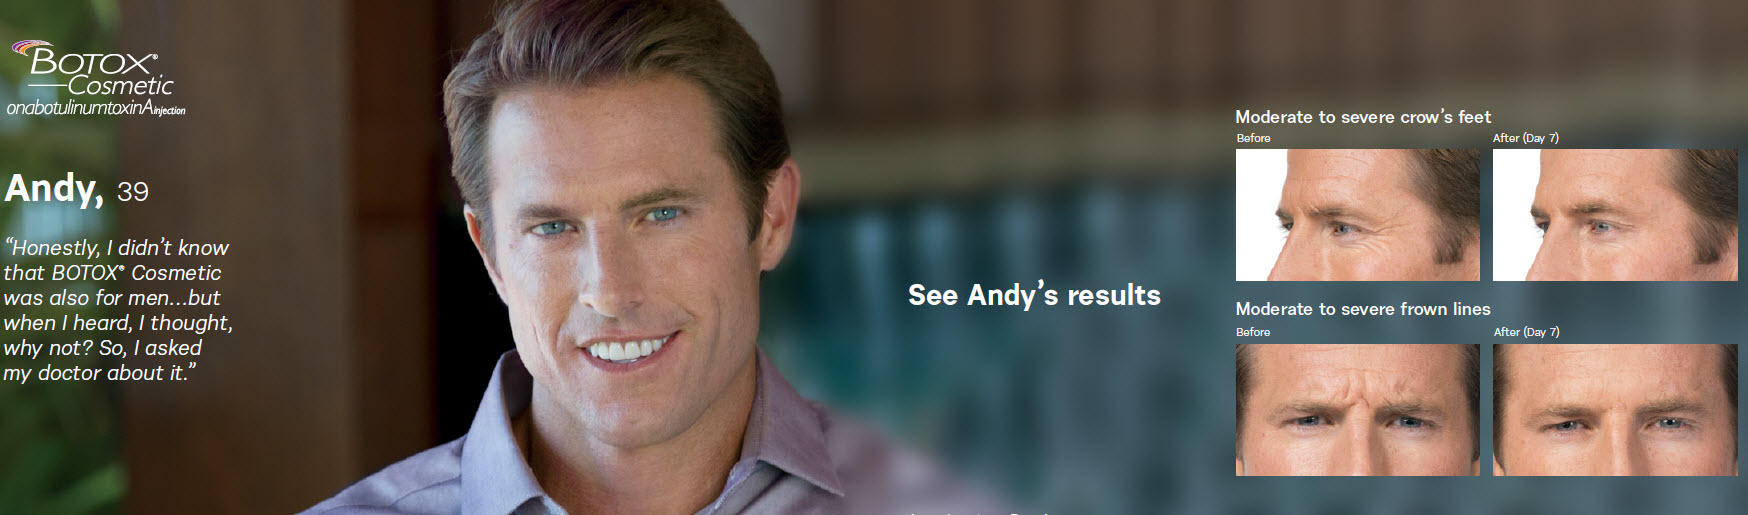 Andy Botox for Men extended